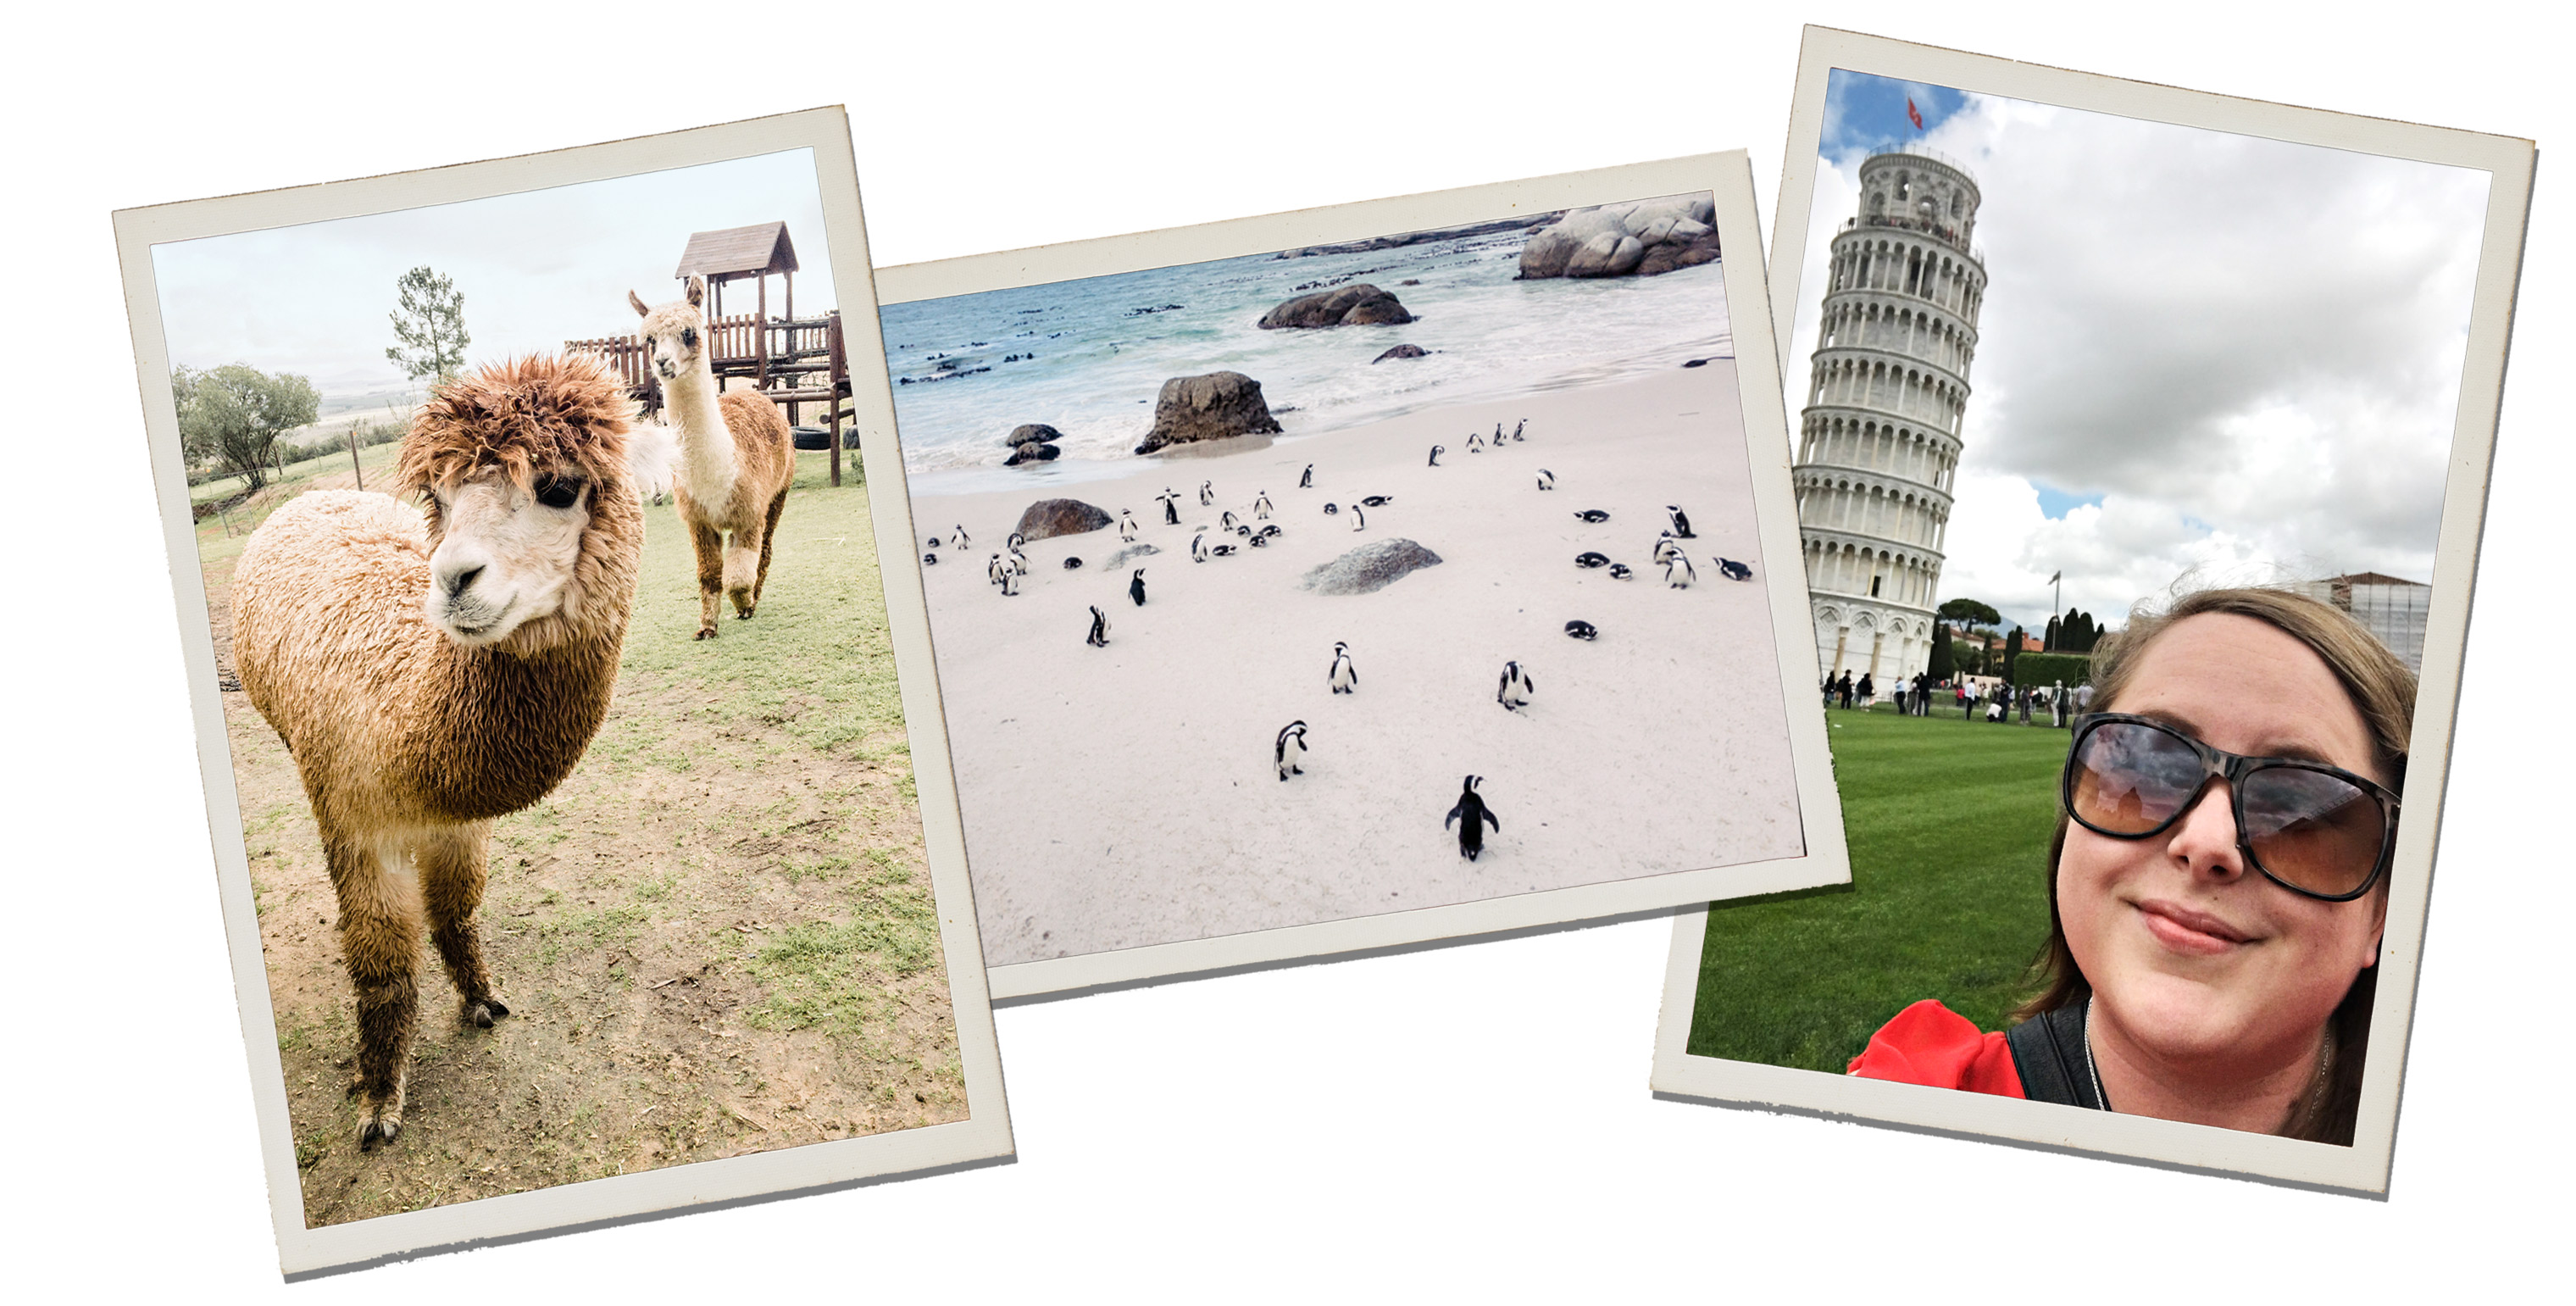 (Left to right) Alycia Moore, a wedding photographer, enjoyed a close encounter with an alpaca in South Africa; Moore also stumbled upon a colony of penguins at the beach near Simons Town; Moore poses with the Leaning Tower of Pisa.